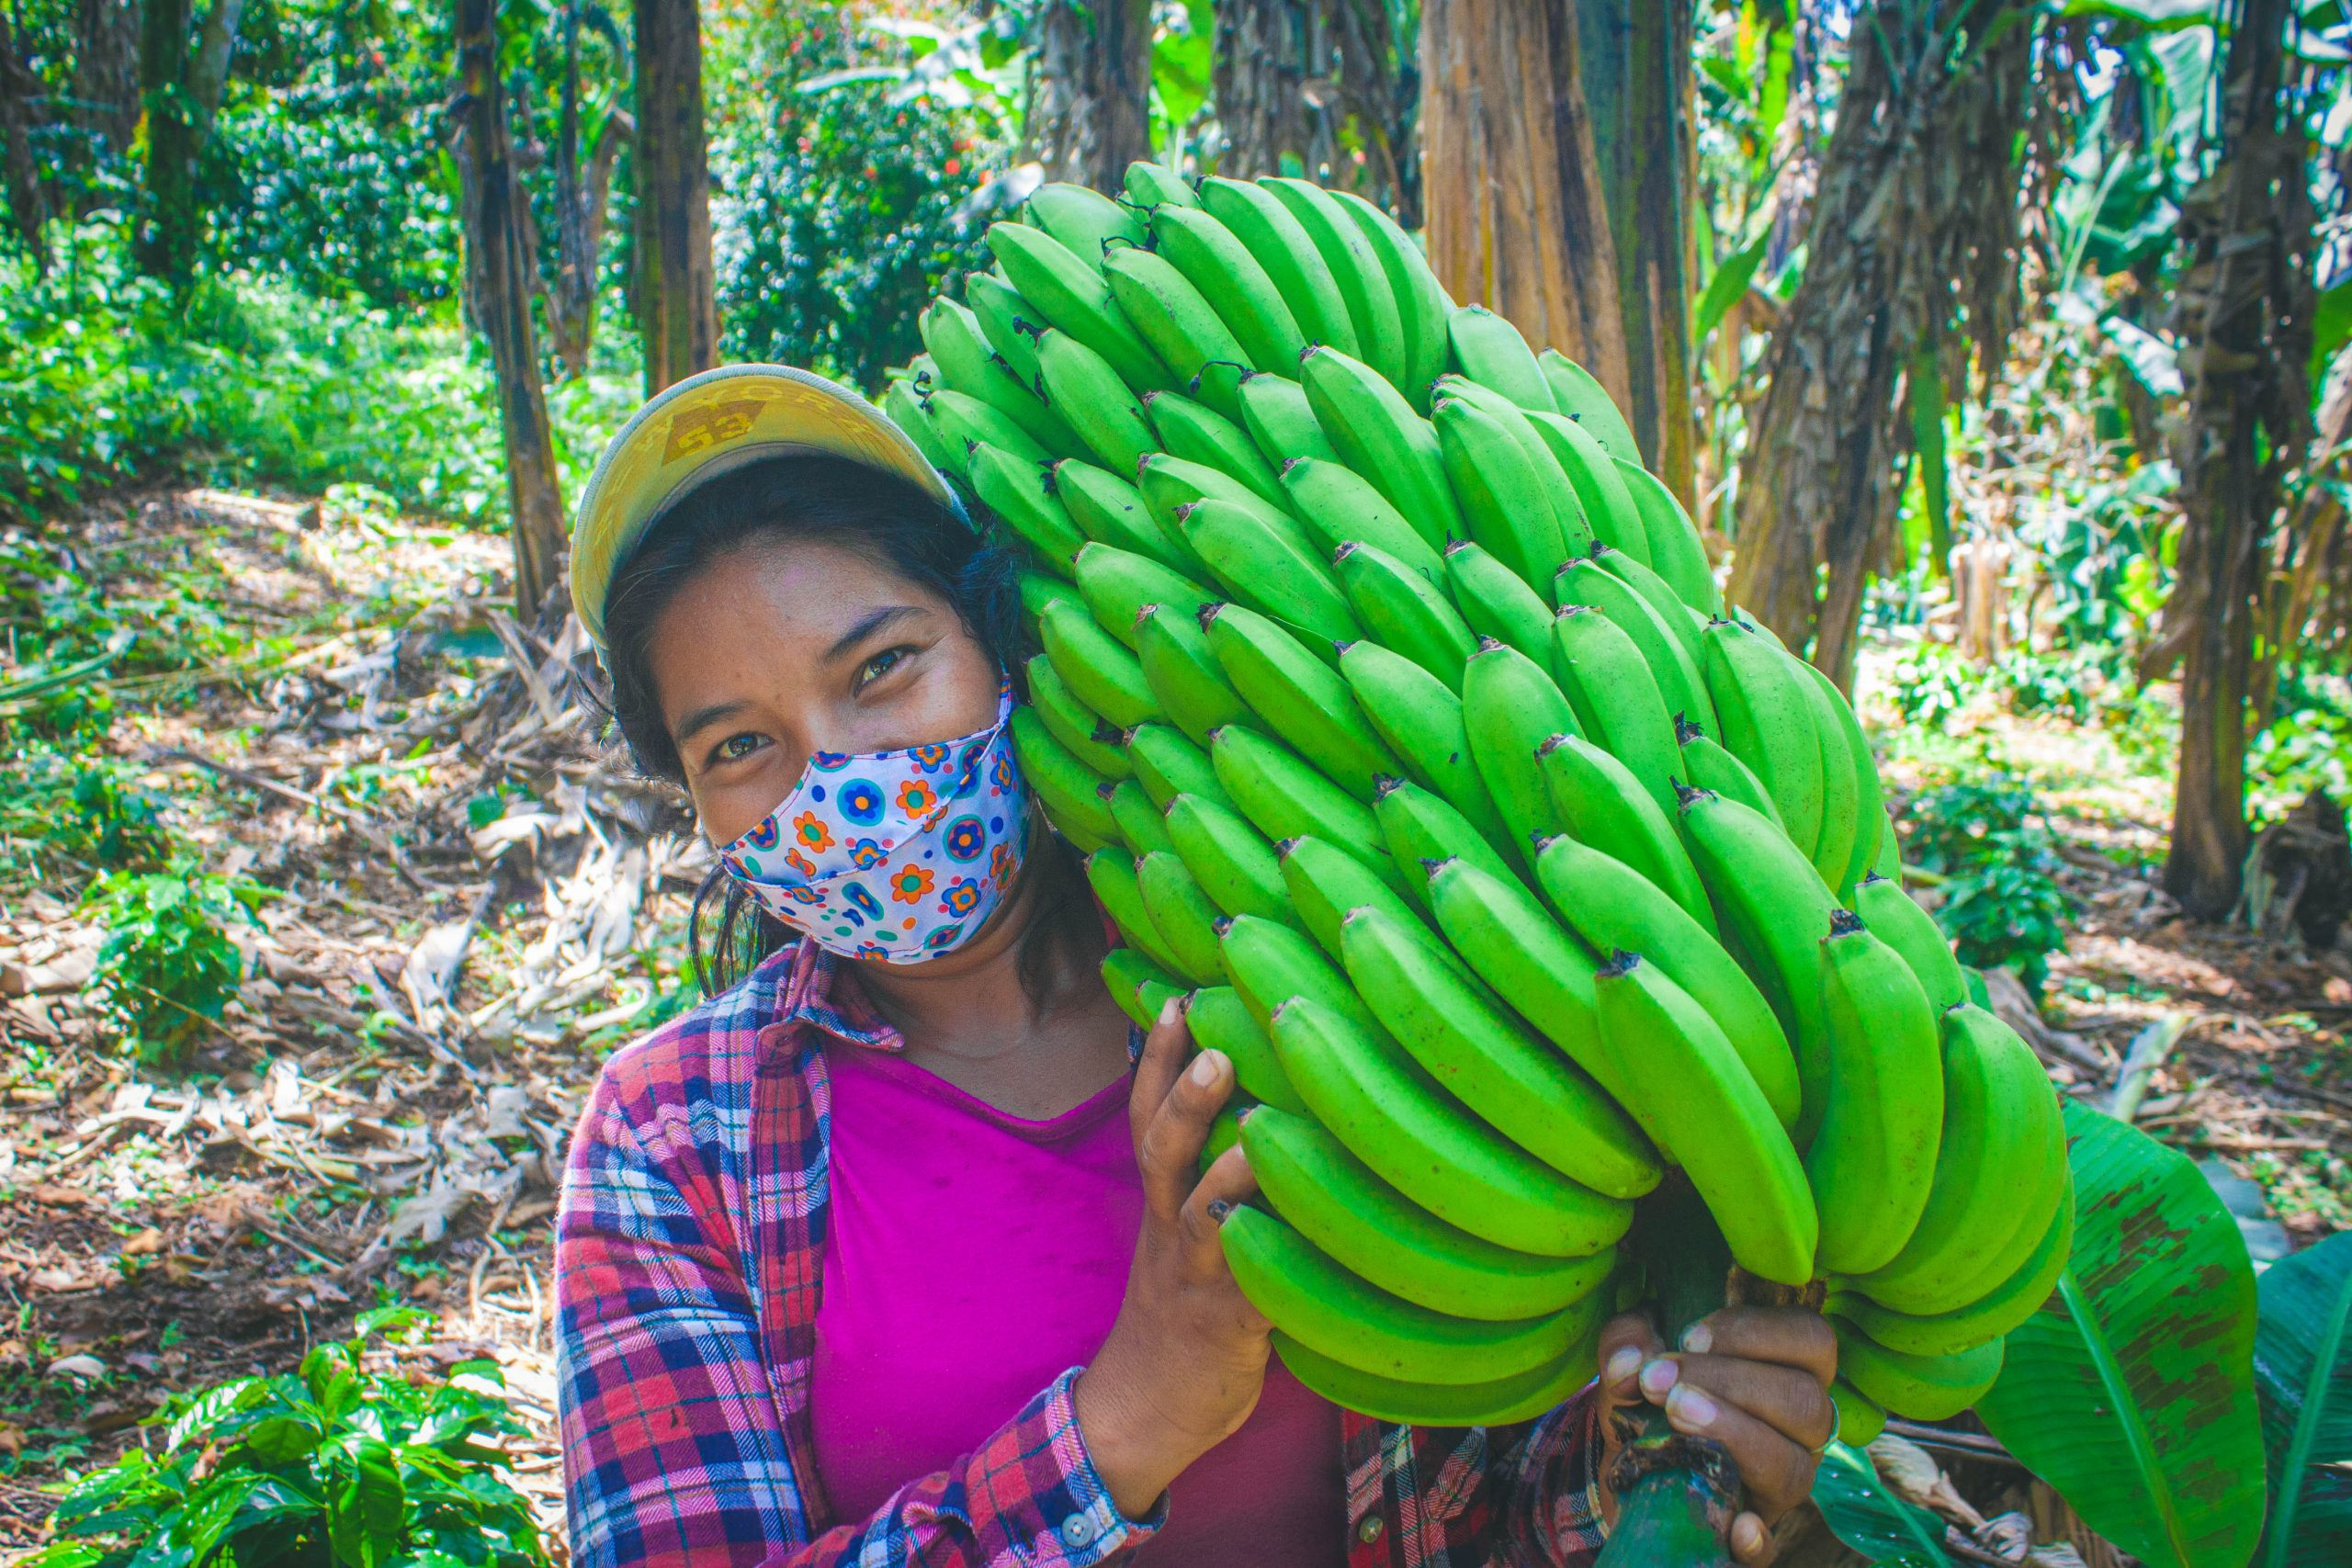 Rosa Gonzales carries a bunch of bananas in Matapalo, Nicaragua